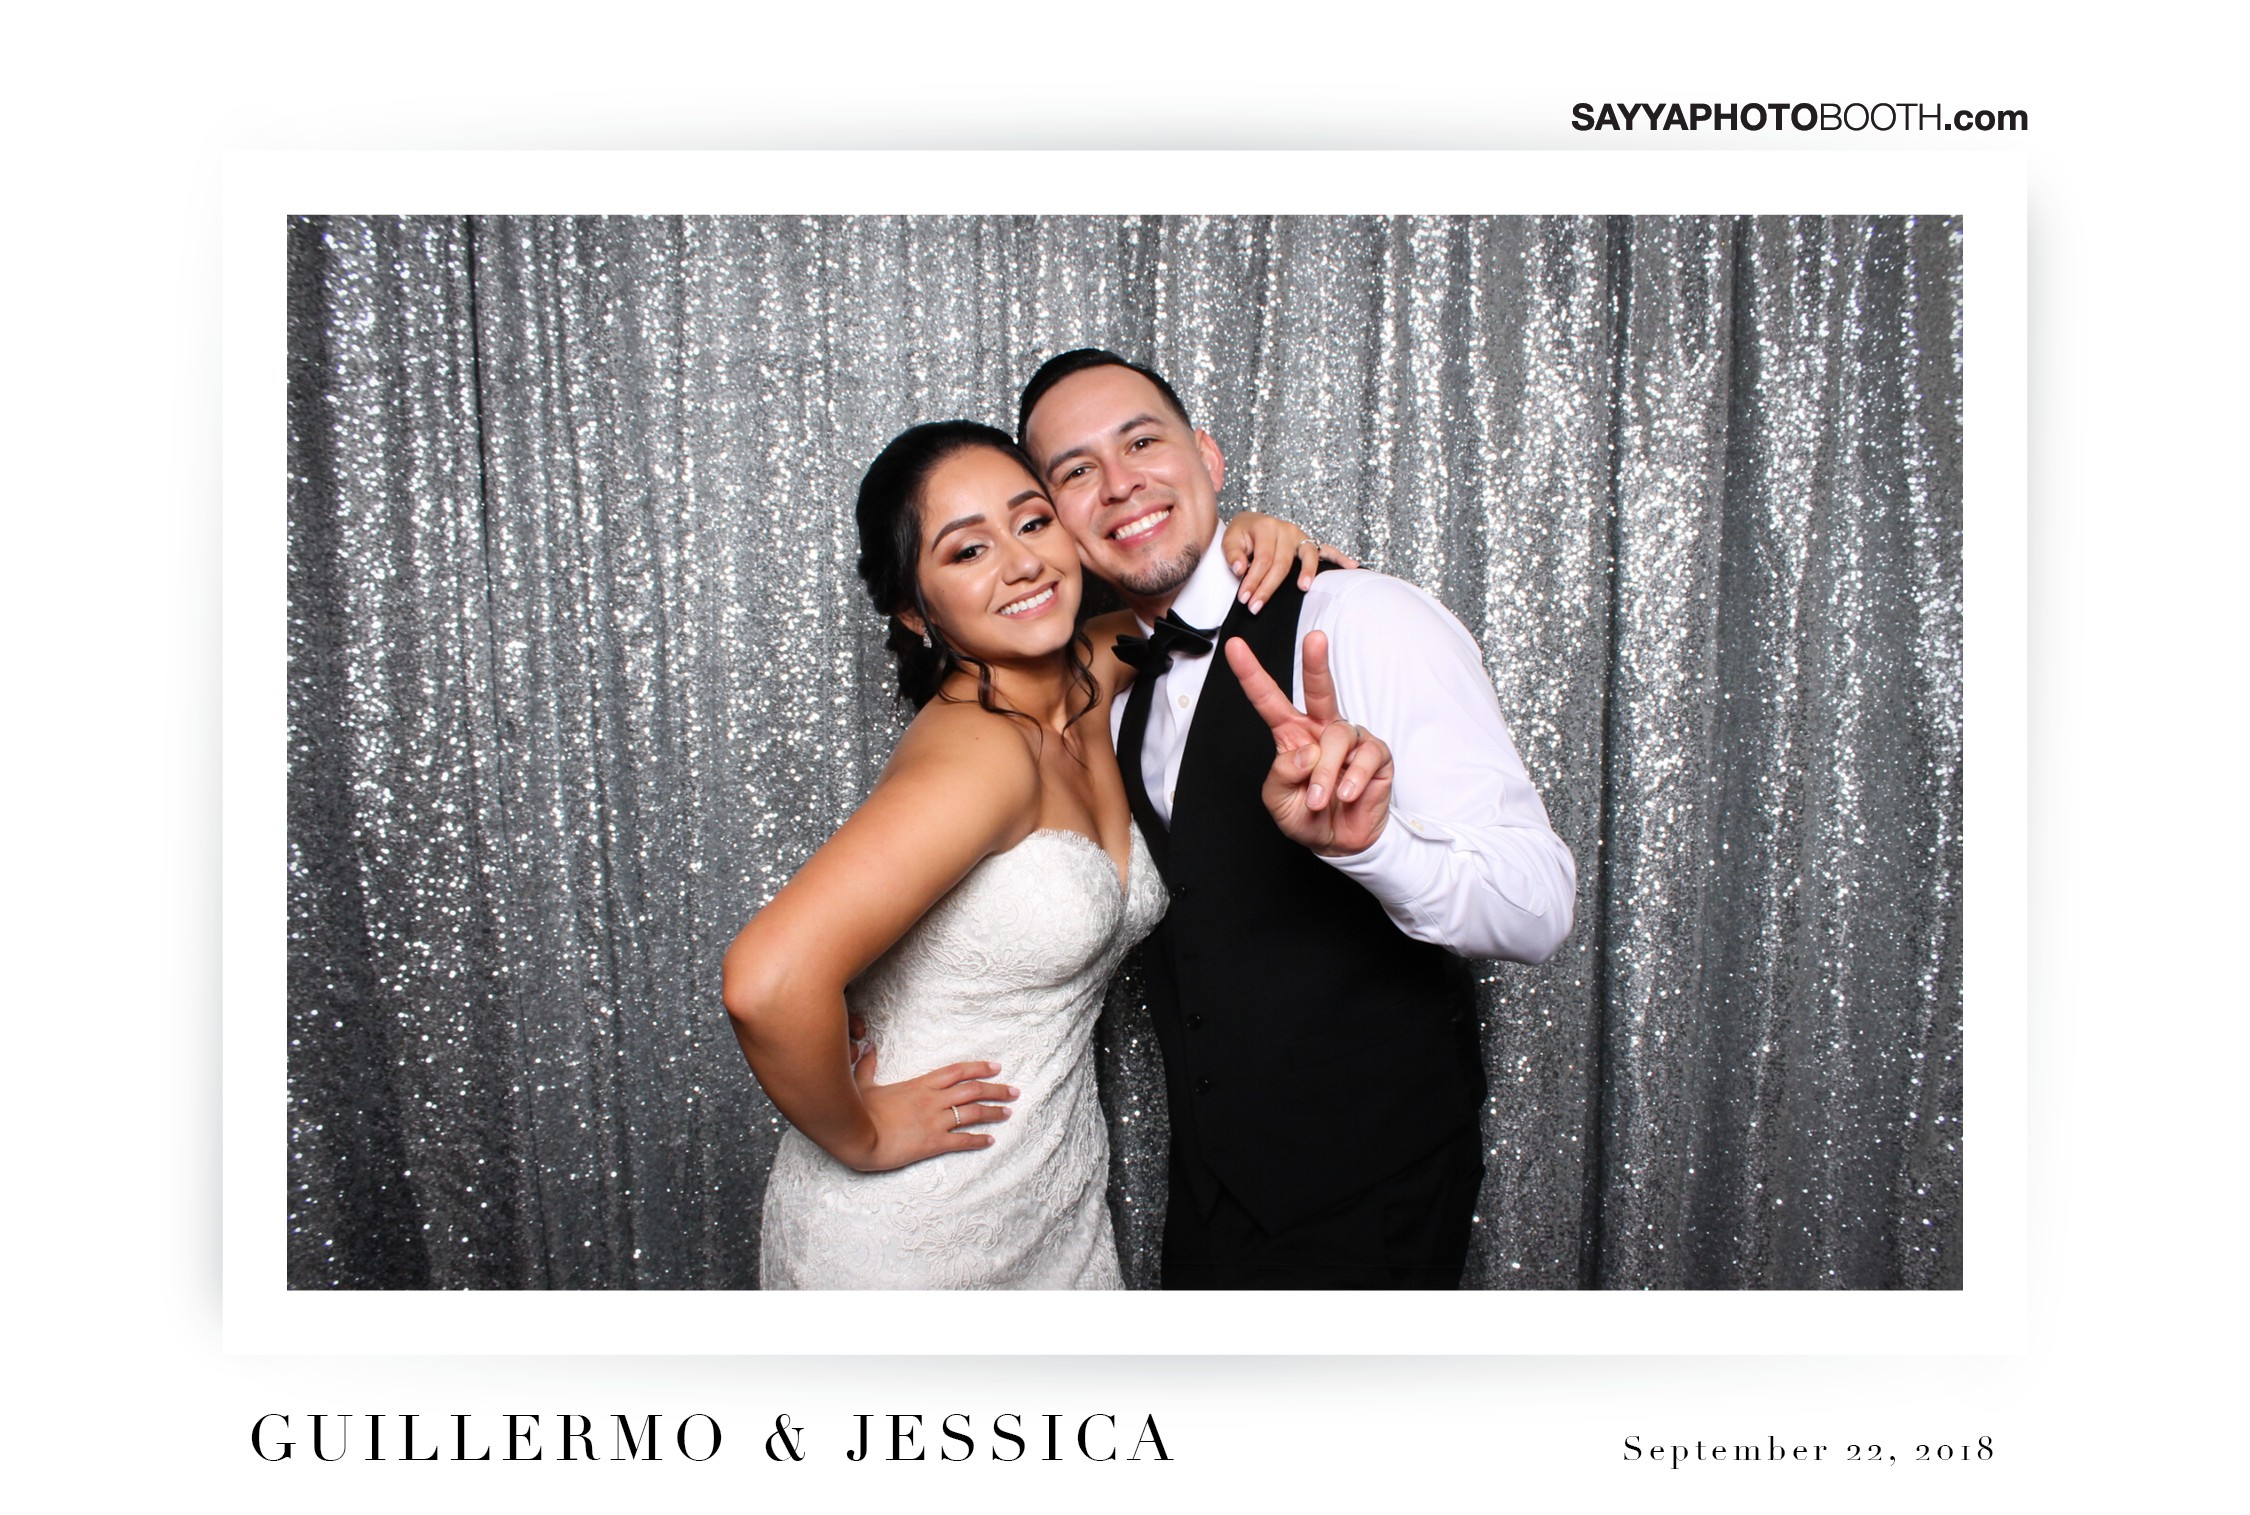 Jessica and Guillermo's Wedding